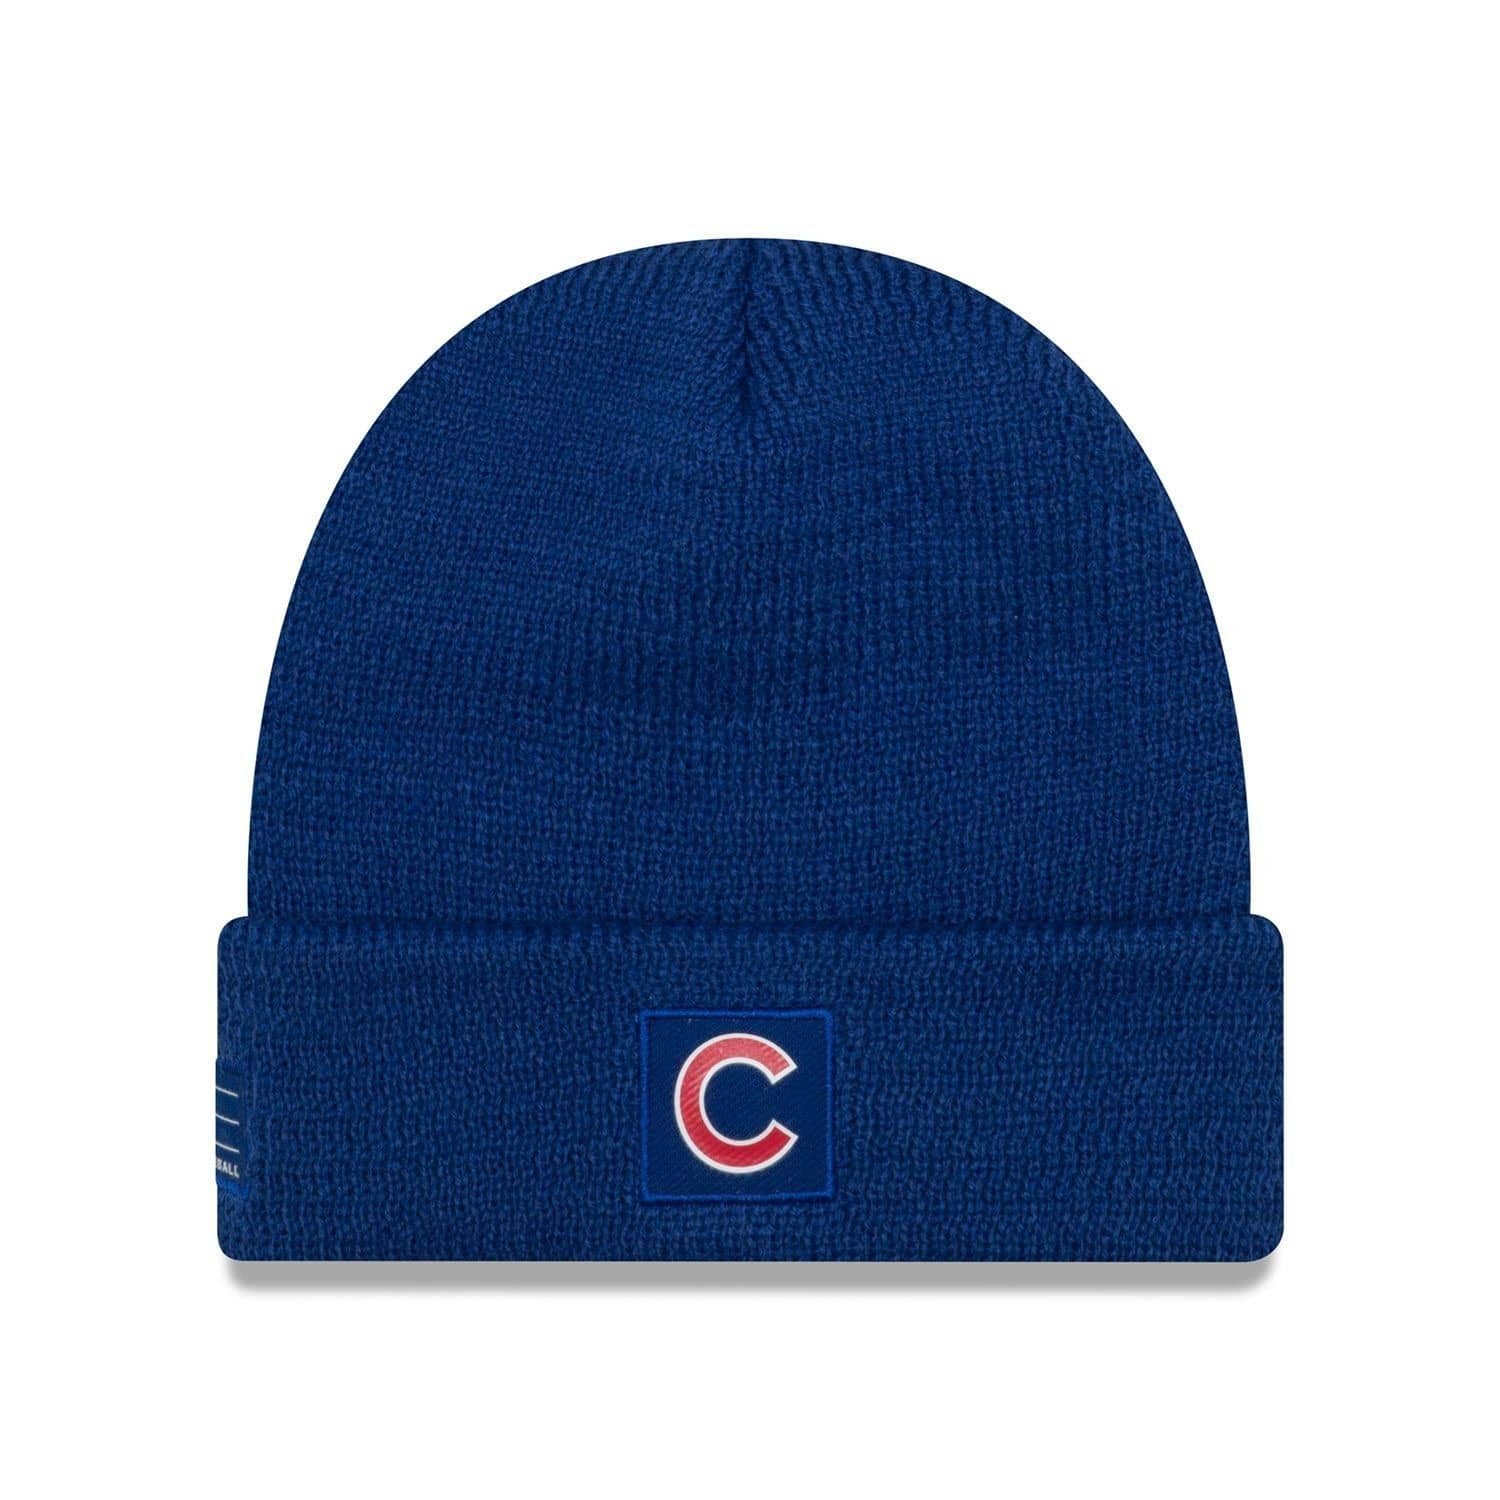 4c46716b6 Chicago Cubs 2018 On-Field Sport Knit MLB Knit Hat